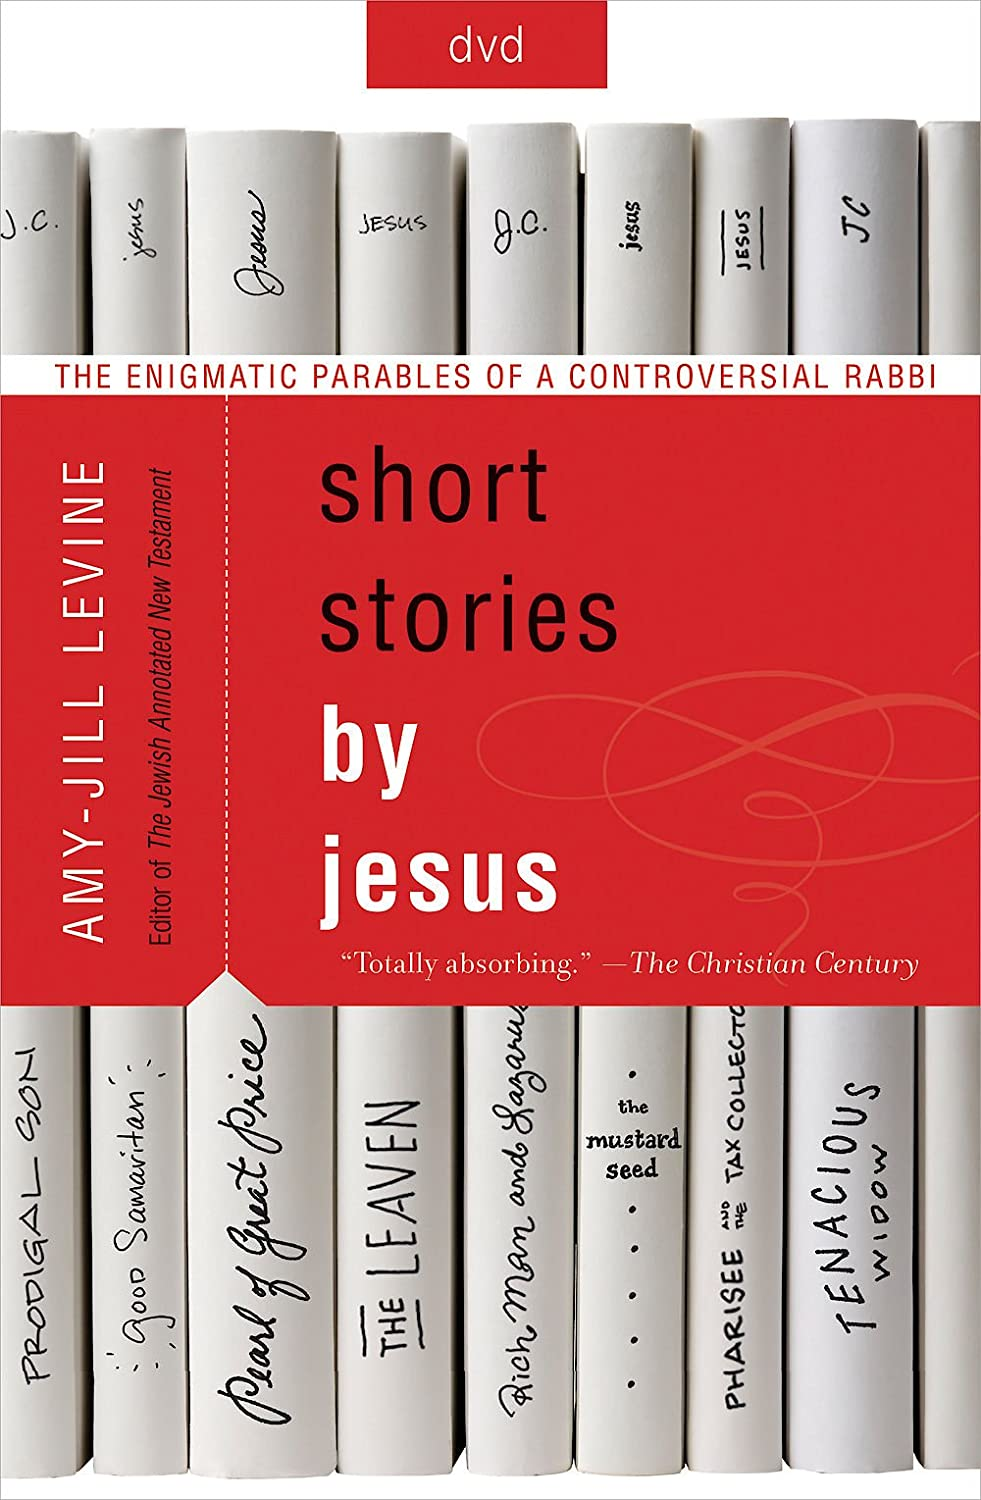 Amazon.com: Short Stories by Jesus DVD: The Enigmatic Parables of a  Controversial Rabbi: Amy-Jill Levine: Movies & TV